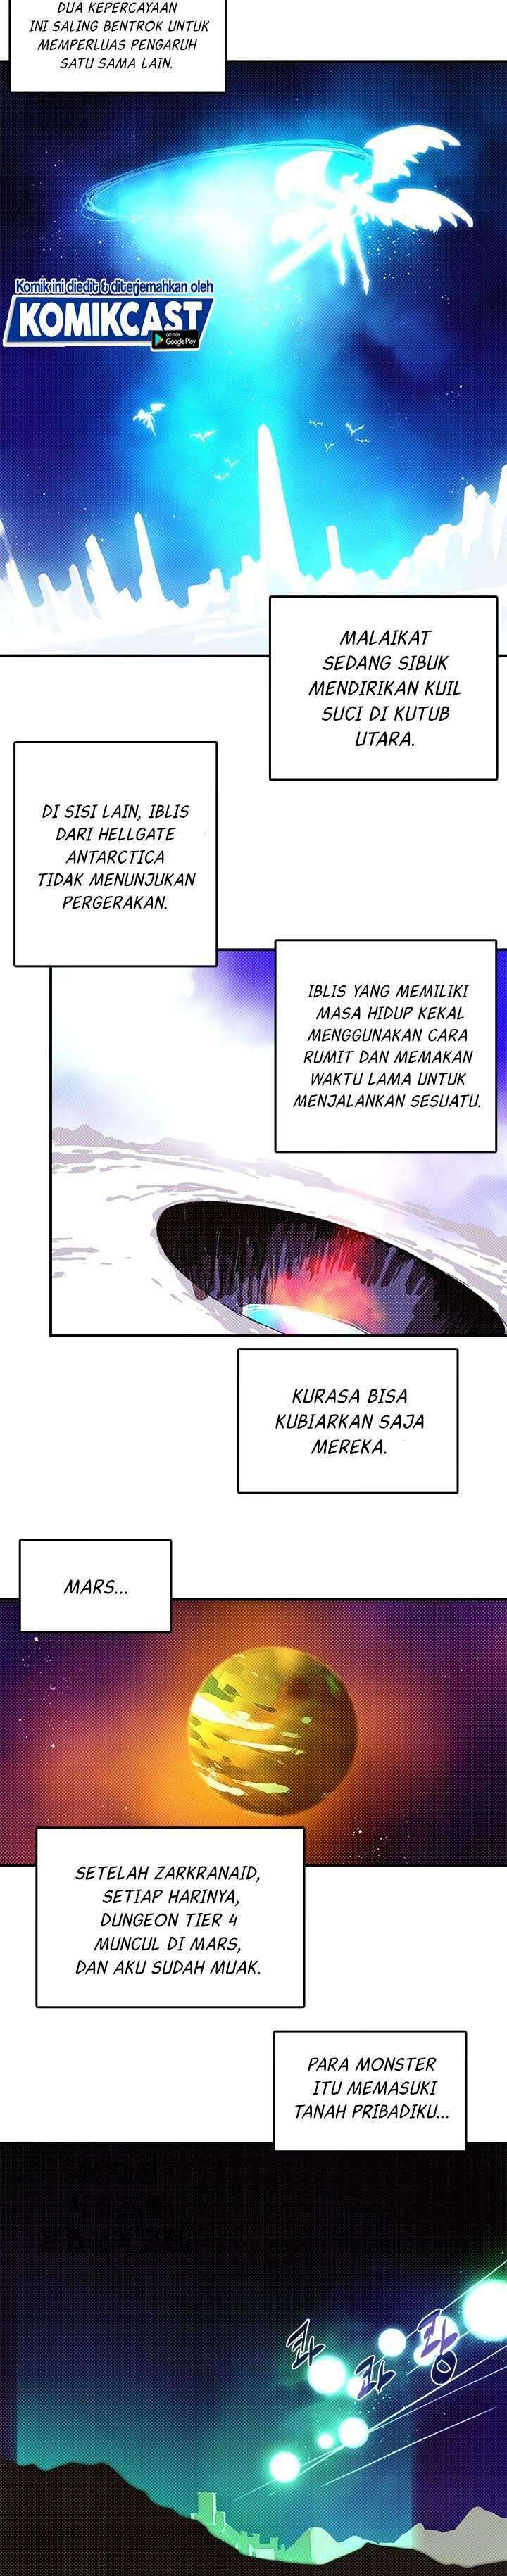 I Am the Sorcerer King Chapter 139 Bahasa Indonesia page 17